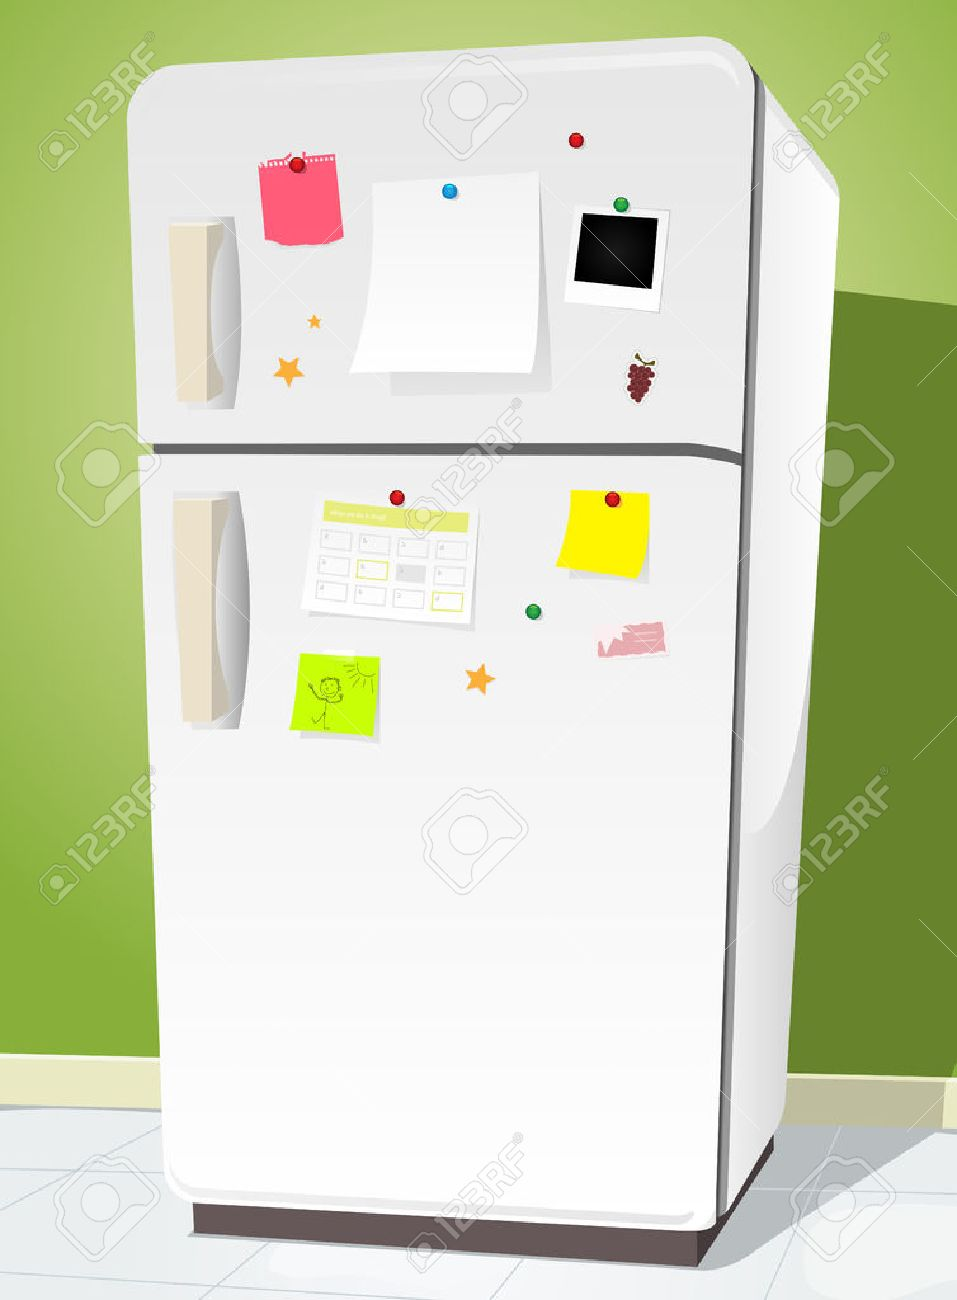 Image result for cartoon note on refrigerator